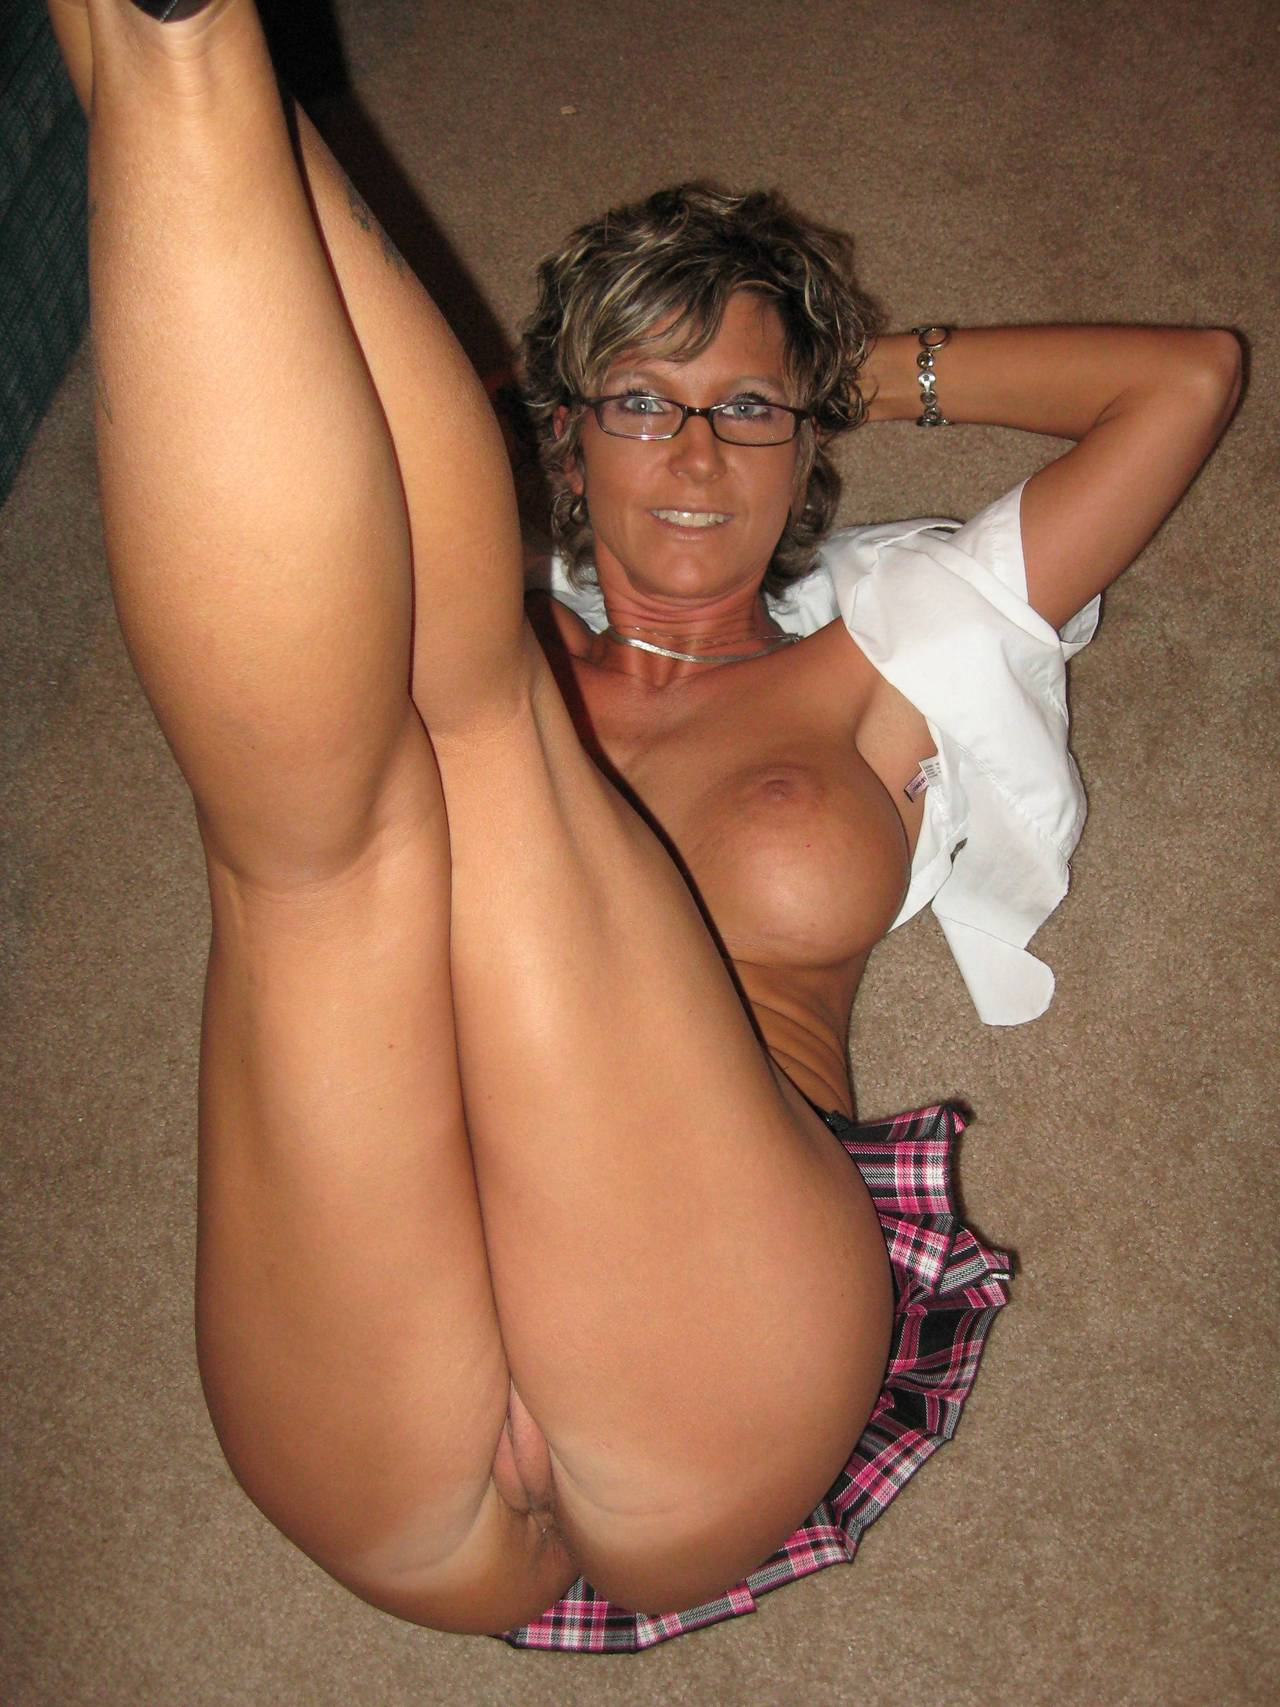 selection of hot milfs - motherless